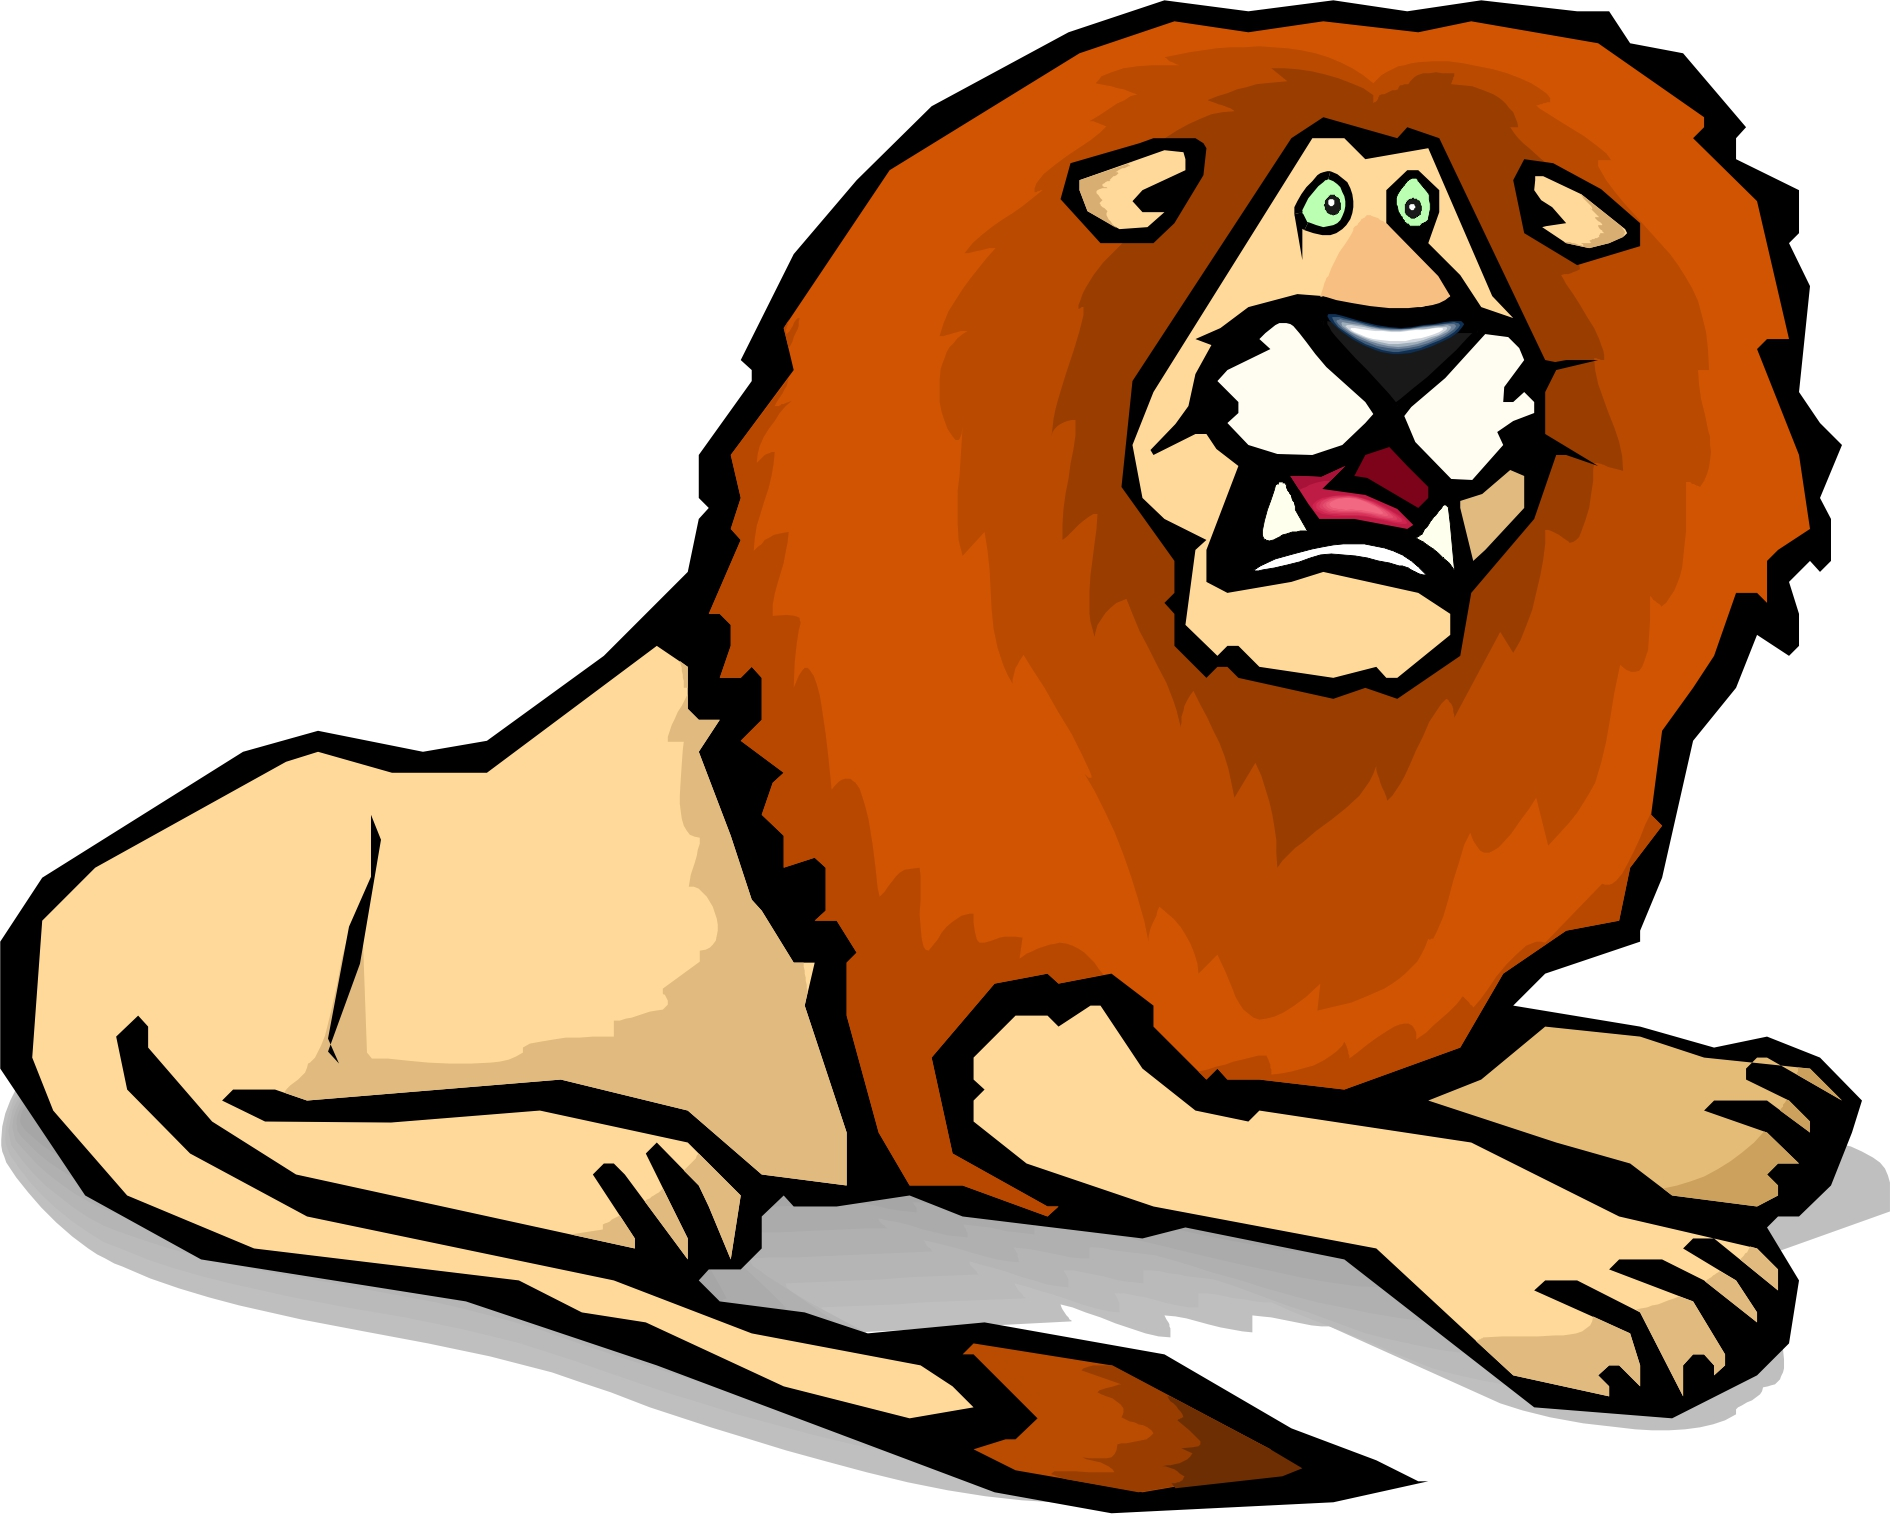 Scary lion clipart.